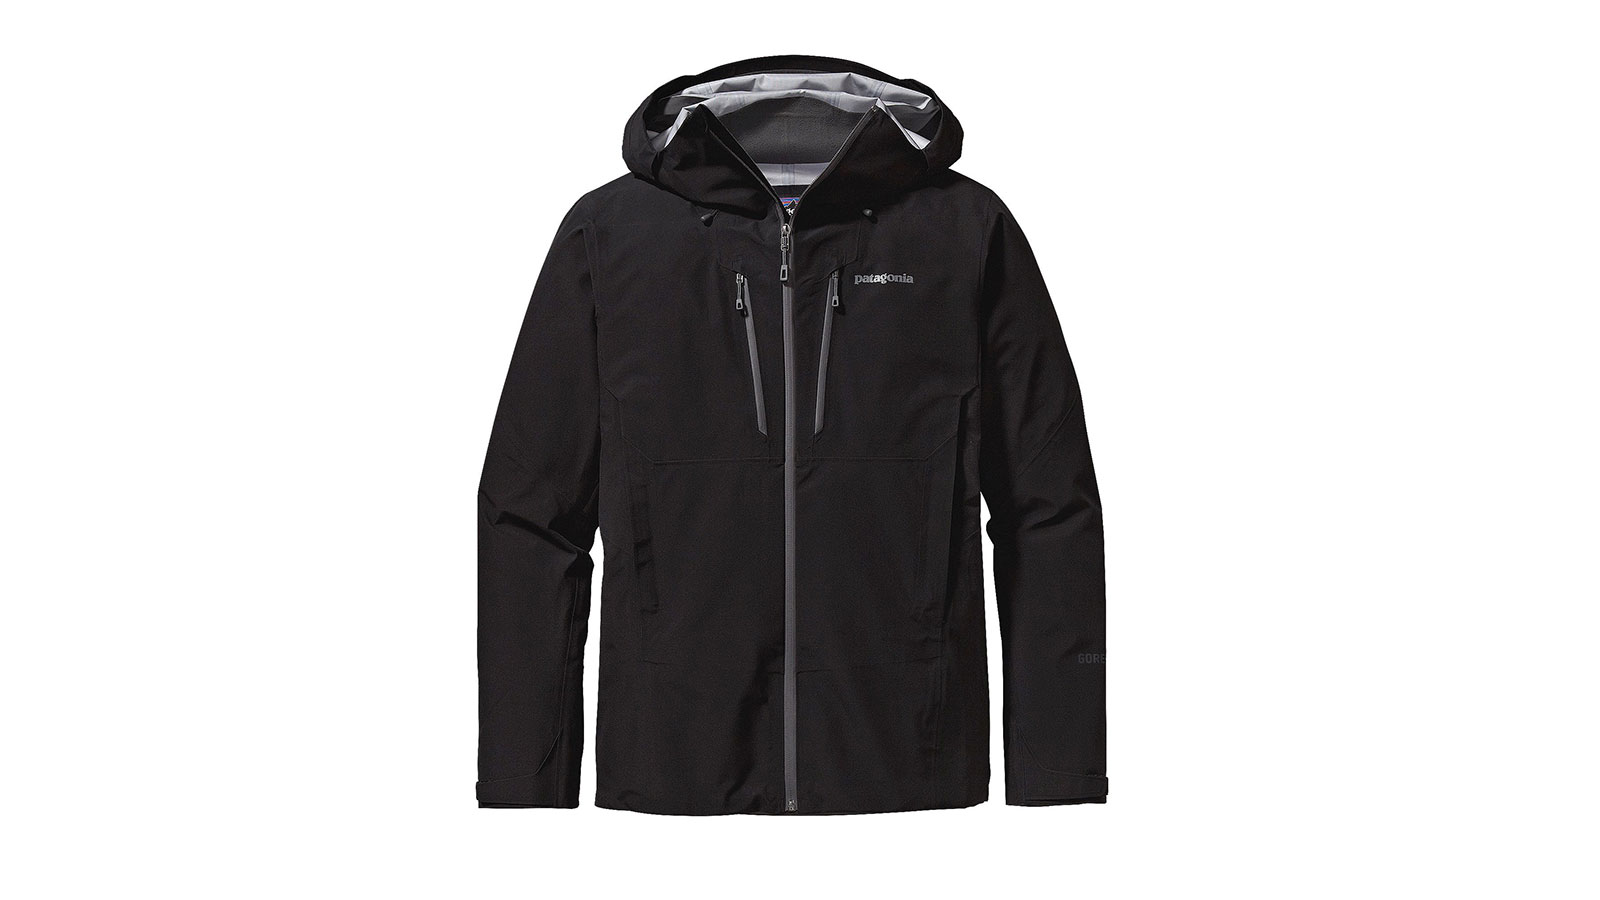 Patagonia Men's Triolet Gortex Men's Ski Jacket | The Best Men's Ski Jackets